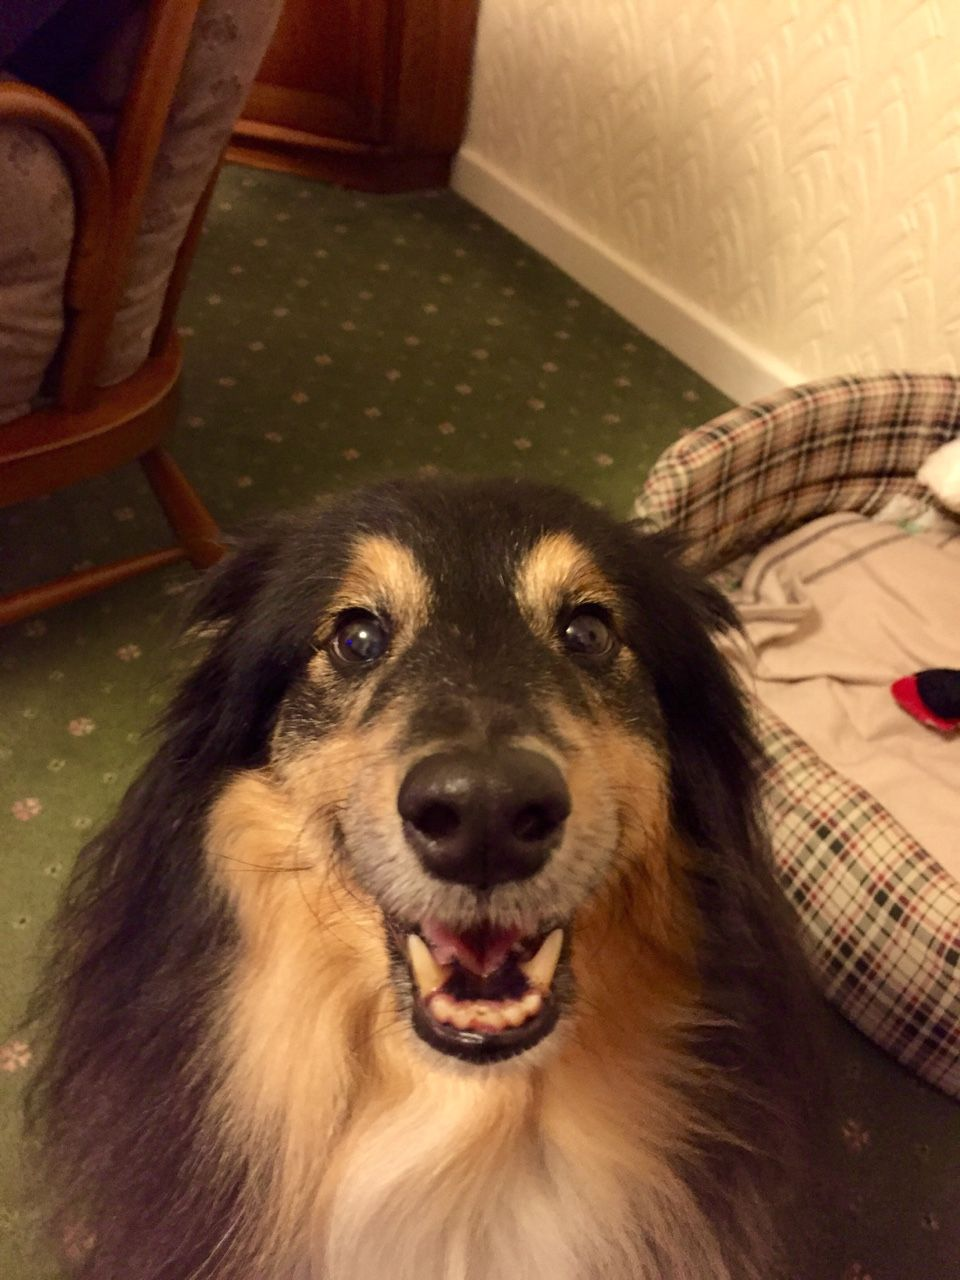 https://www.tumblr.com/search/sheltie/recent